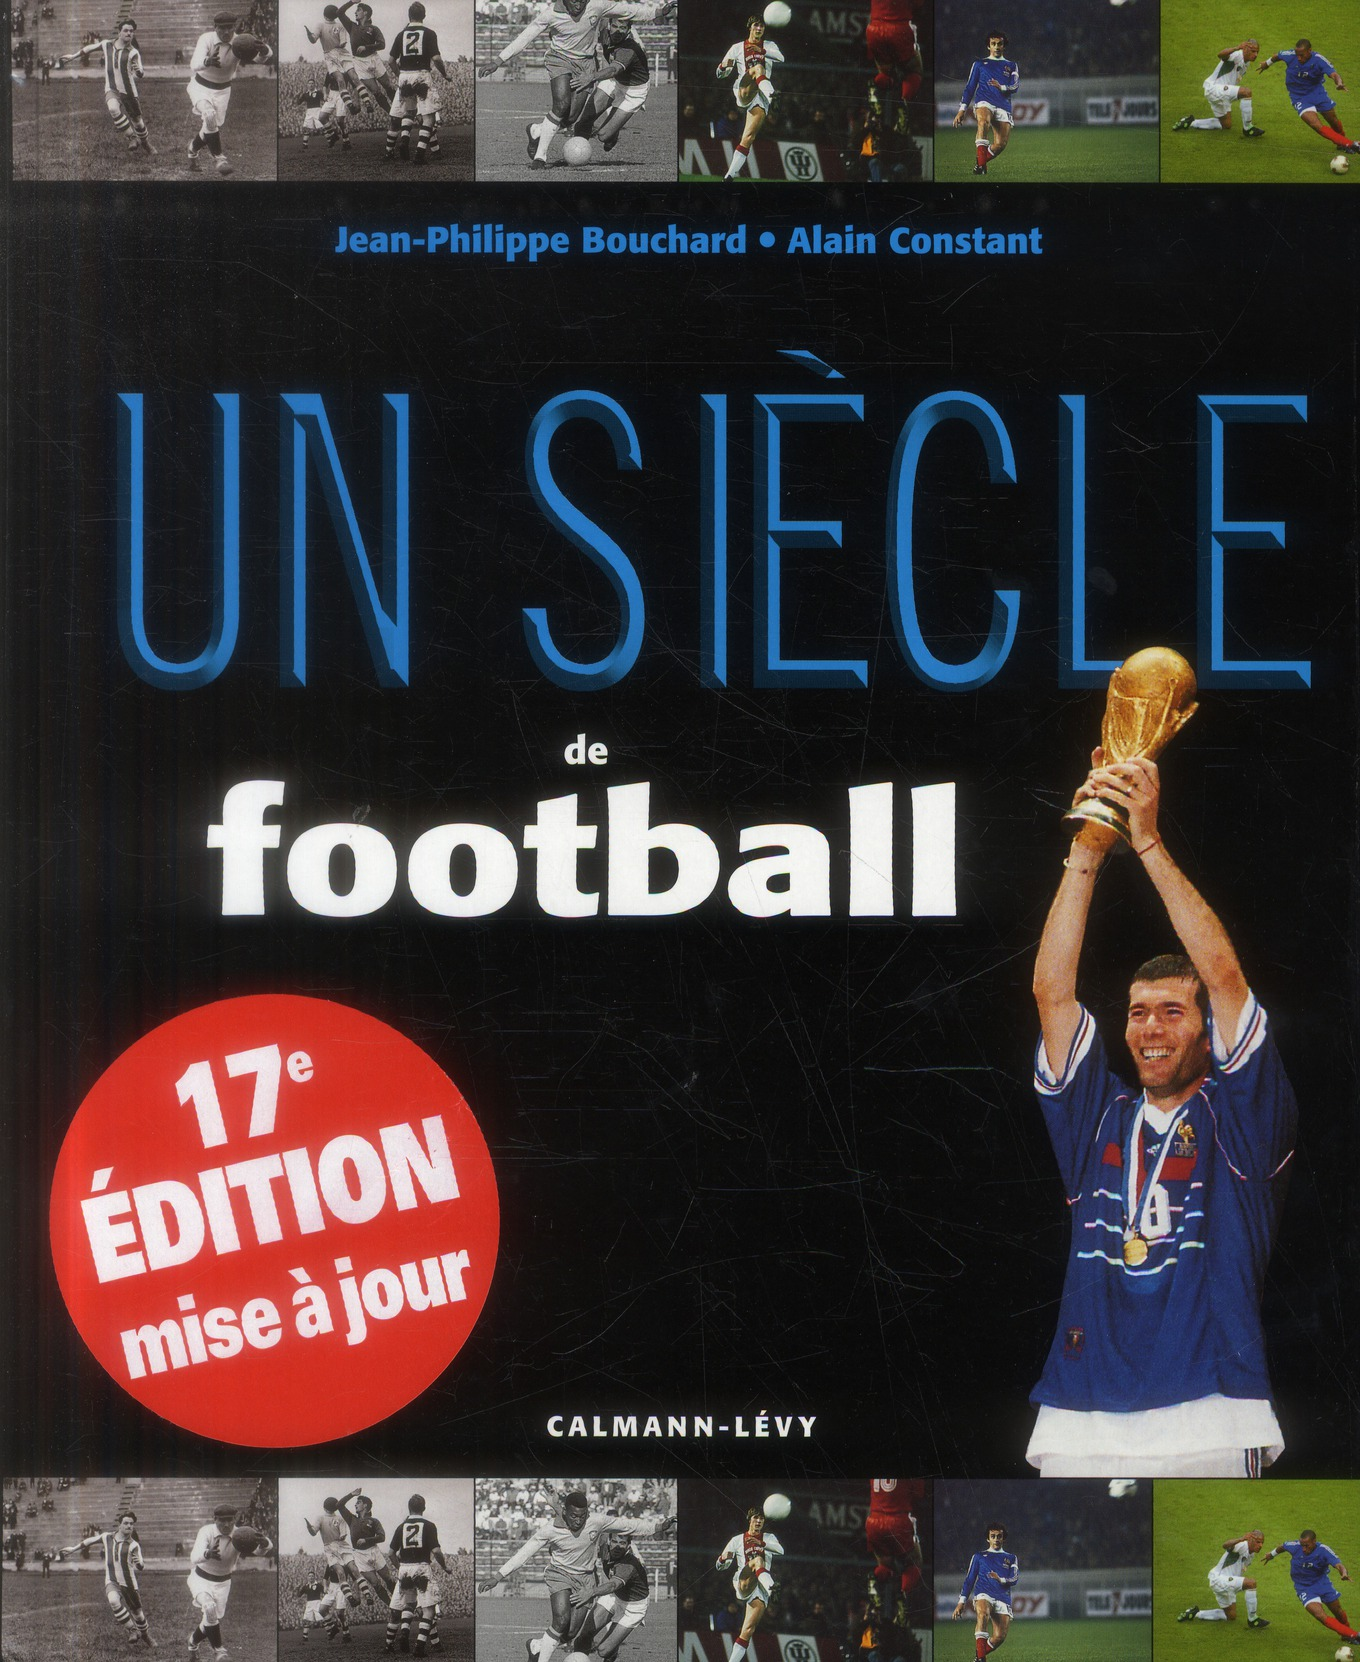 UN SIECLE DE FOOTBALL 2013 - 17EME EDITION -